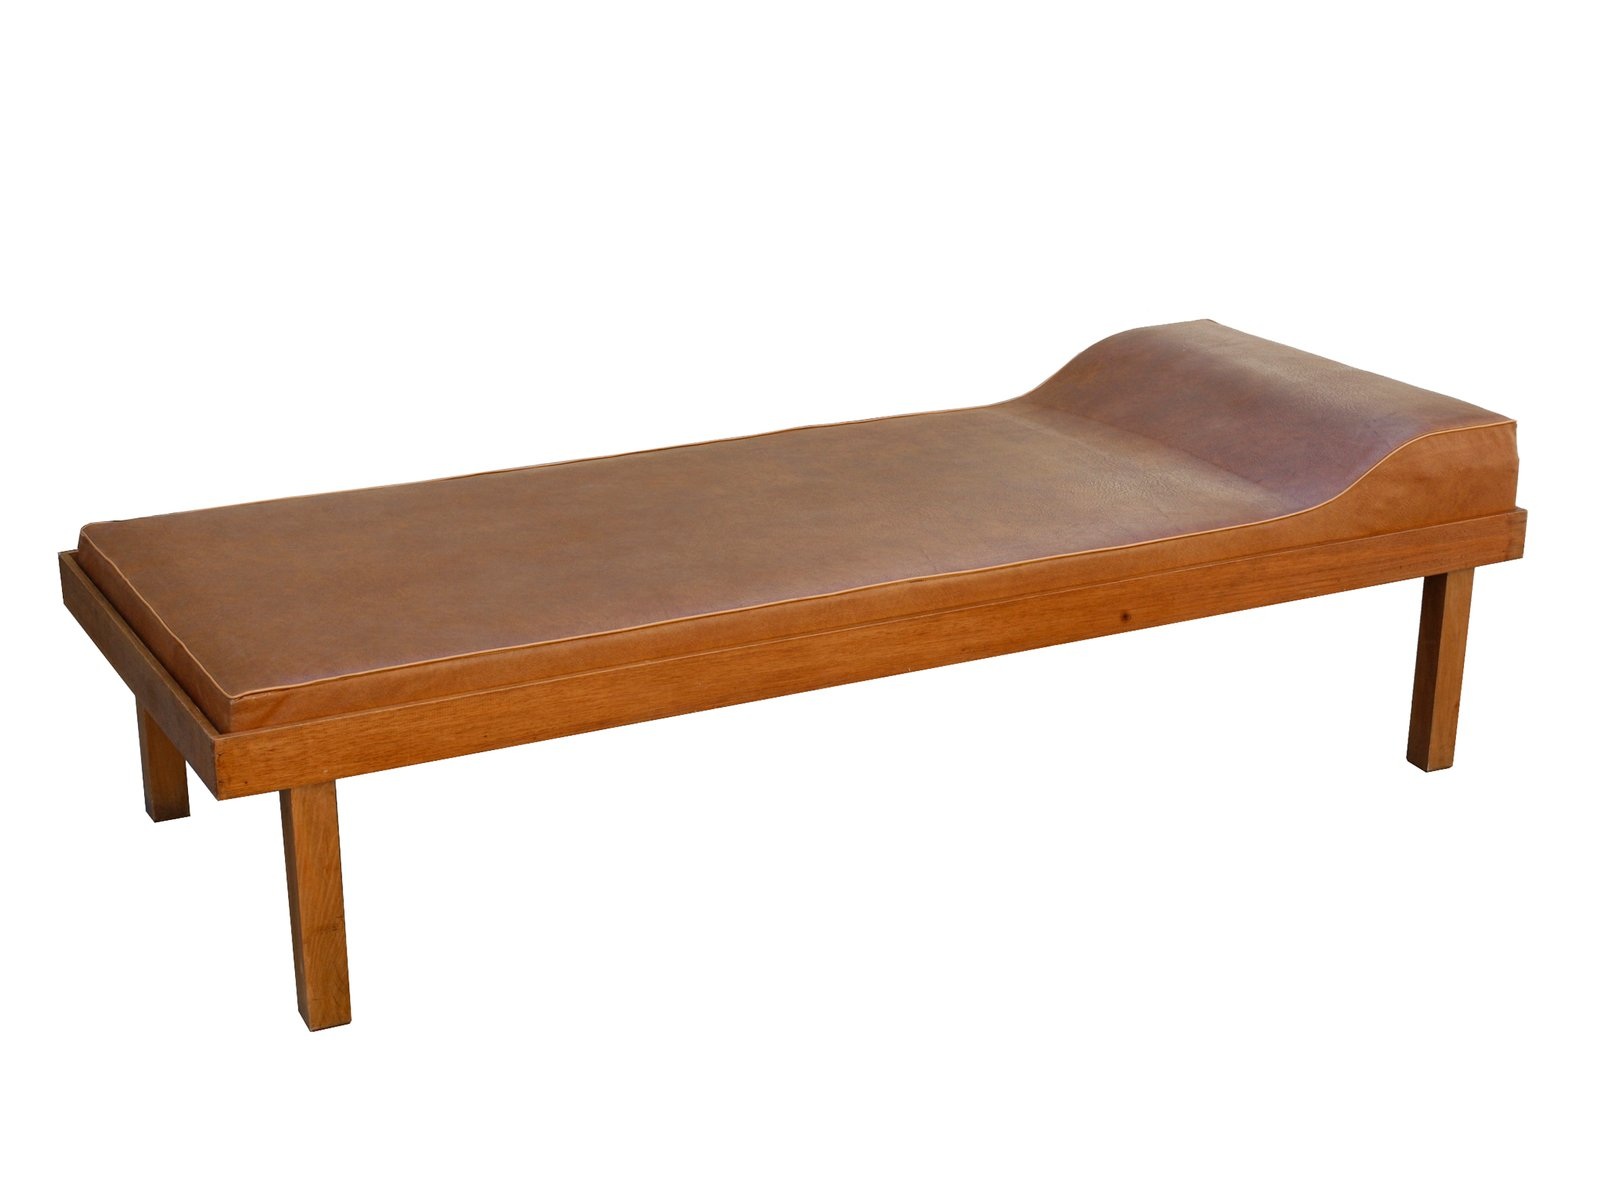 Vintage french chaise lounge for sale at pamono for Antique french chaise lounge